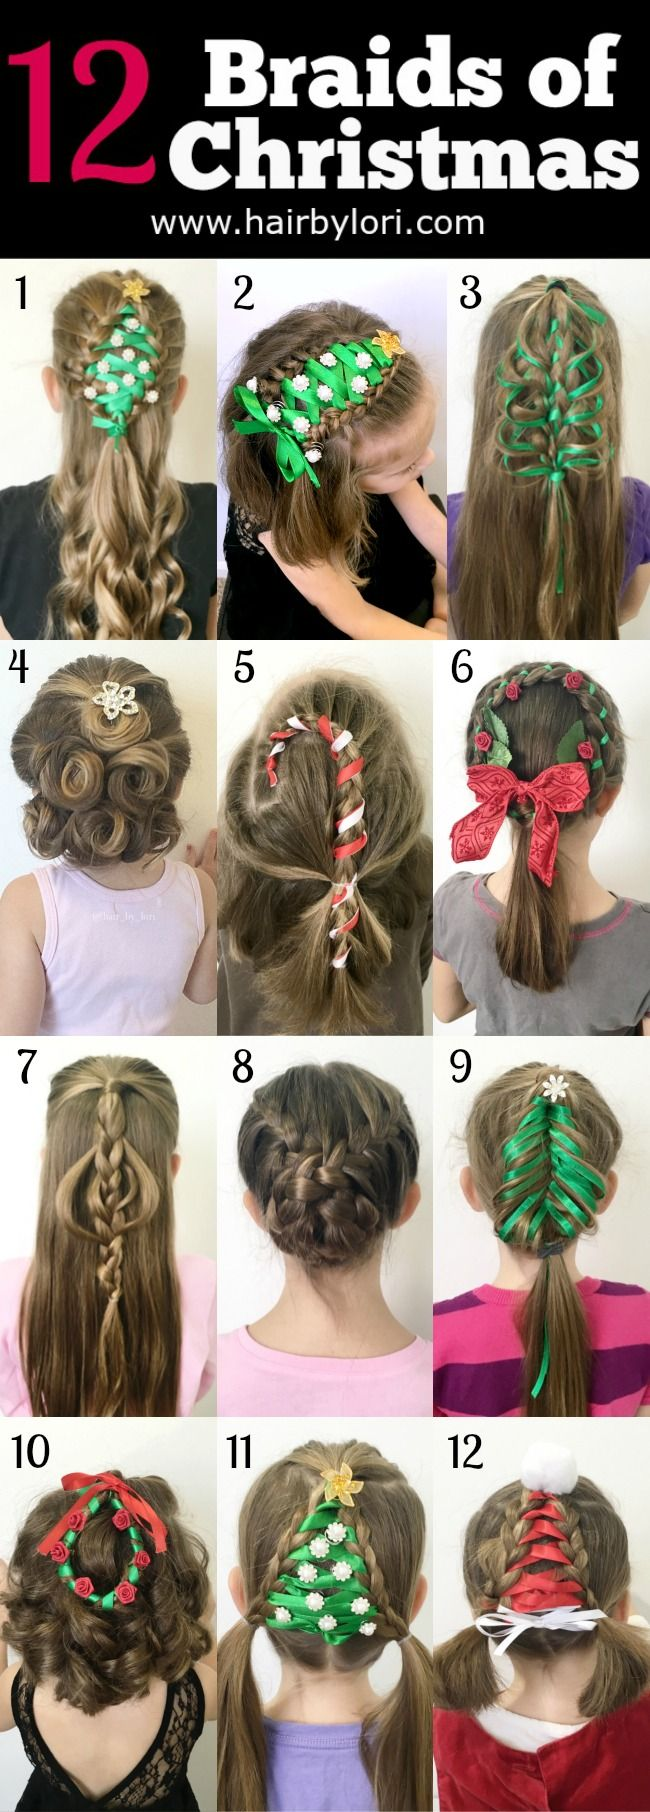 12 Braids of Christmas - GREAT holiday hairstyles,with links to tutorials for all!